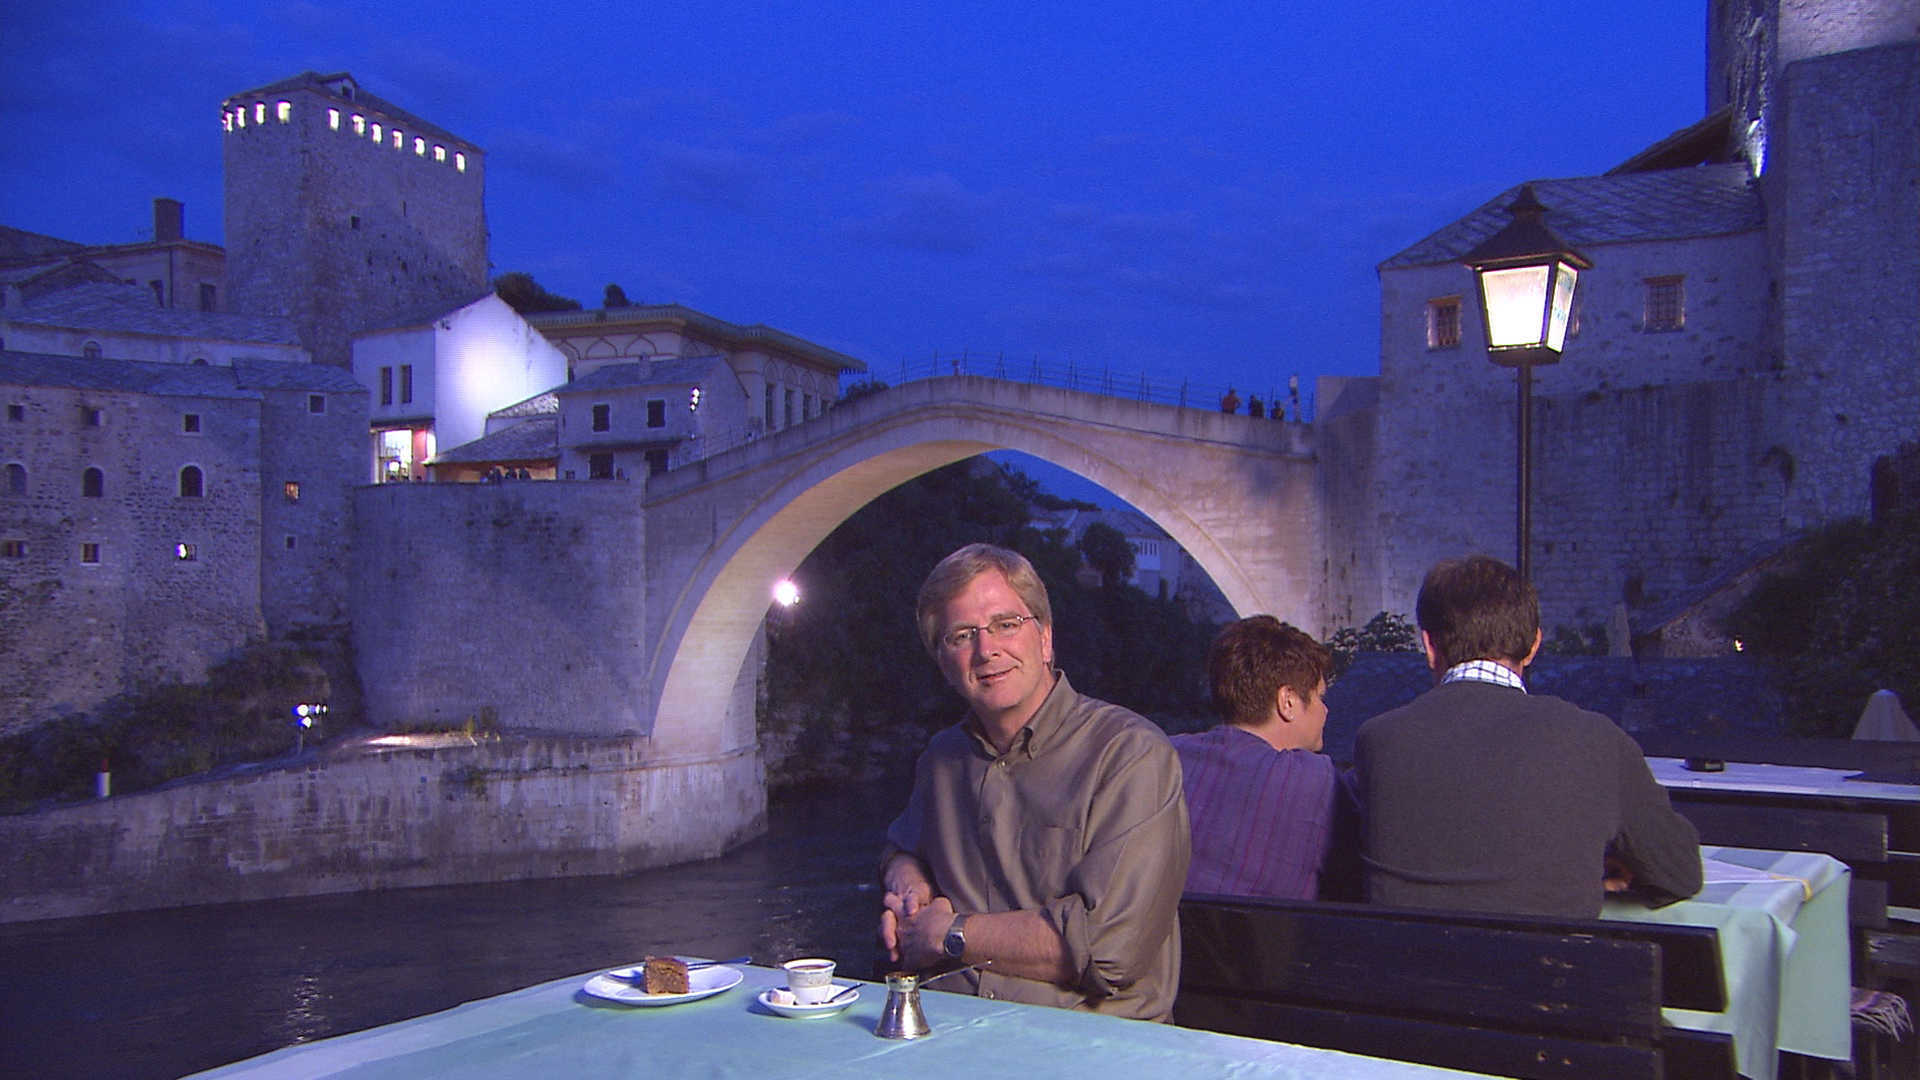 Rick Steves and the Mostar Bridge